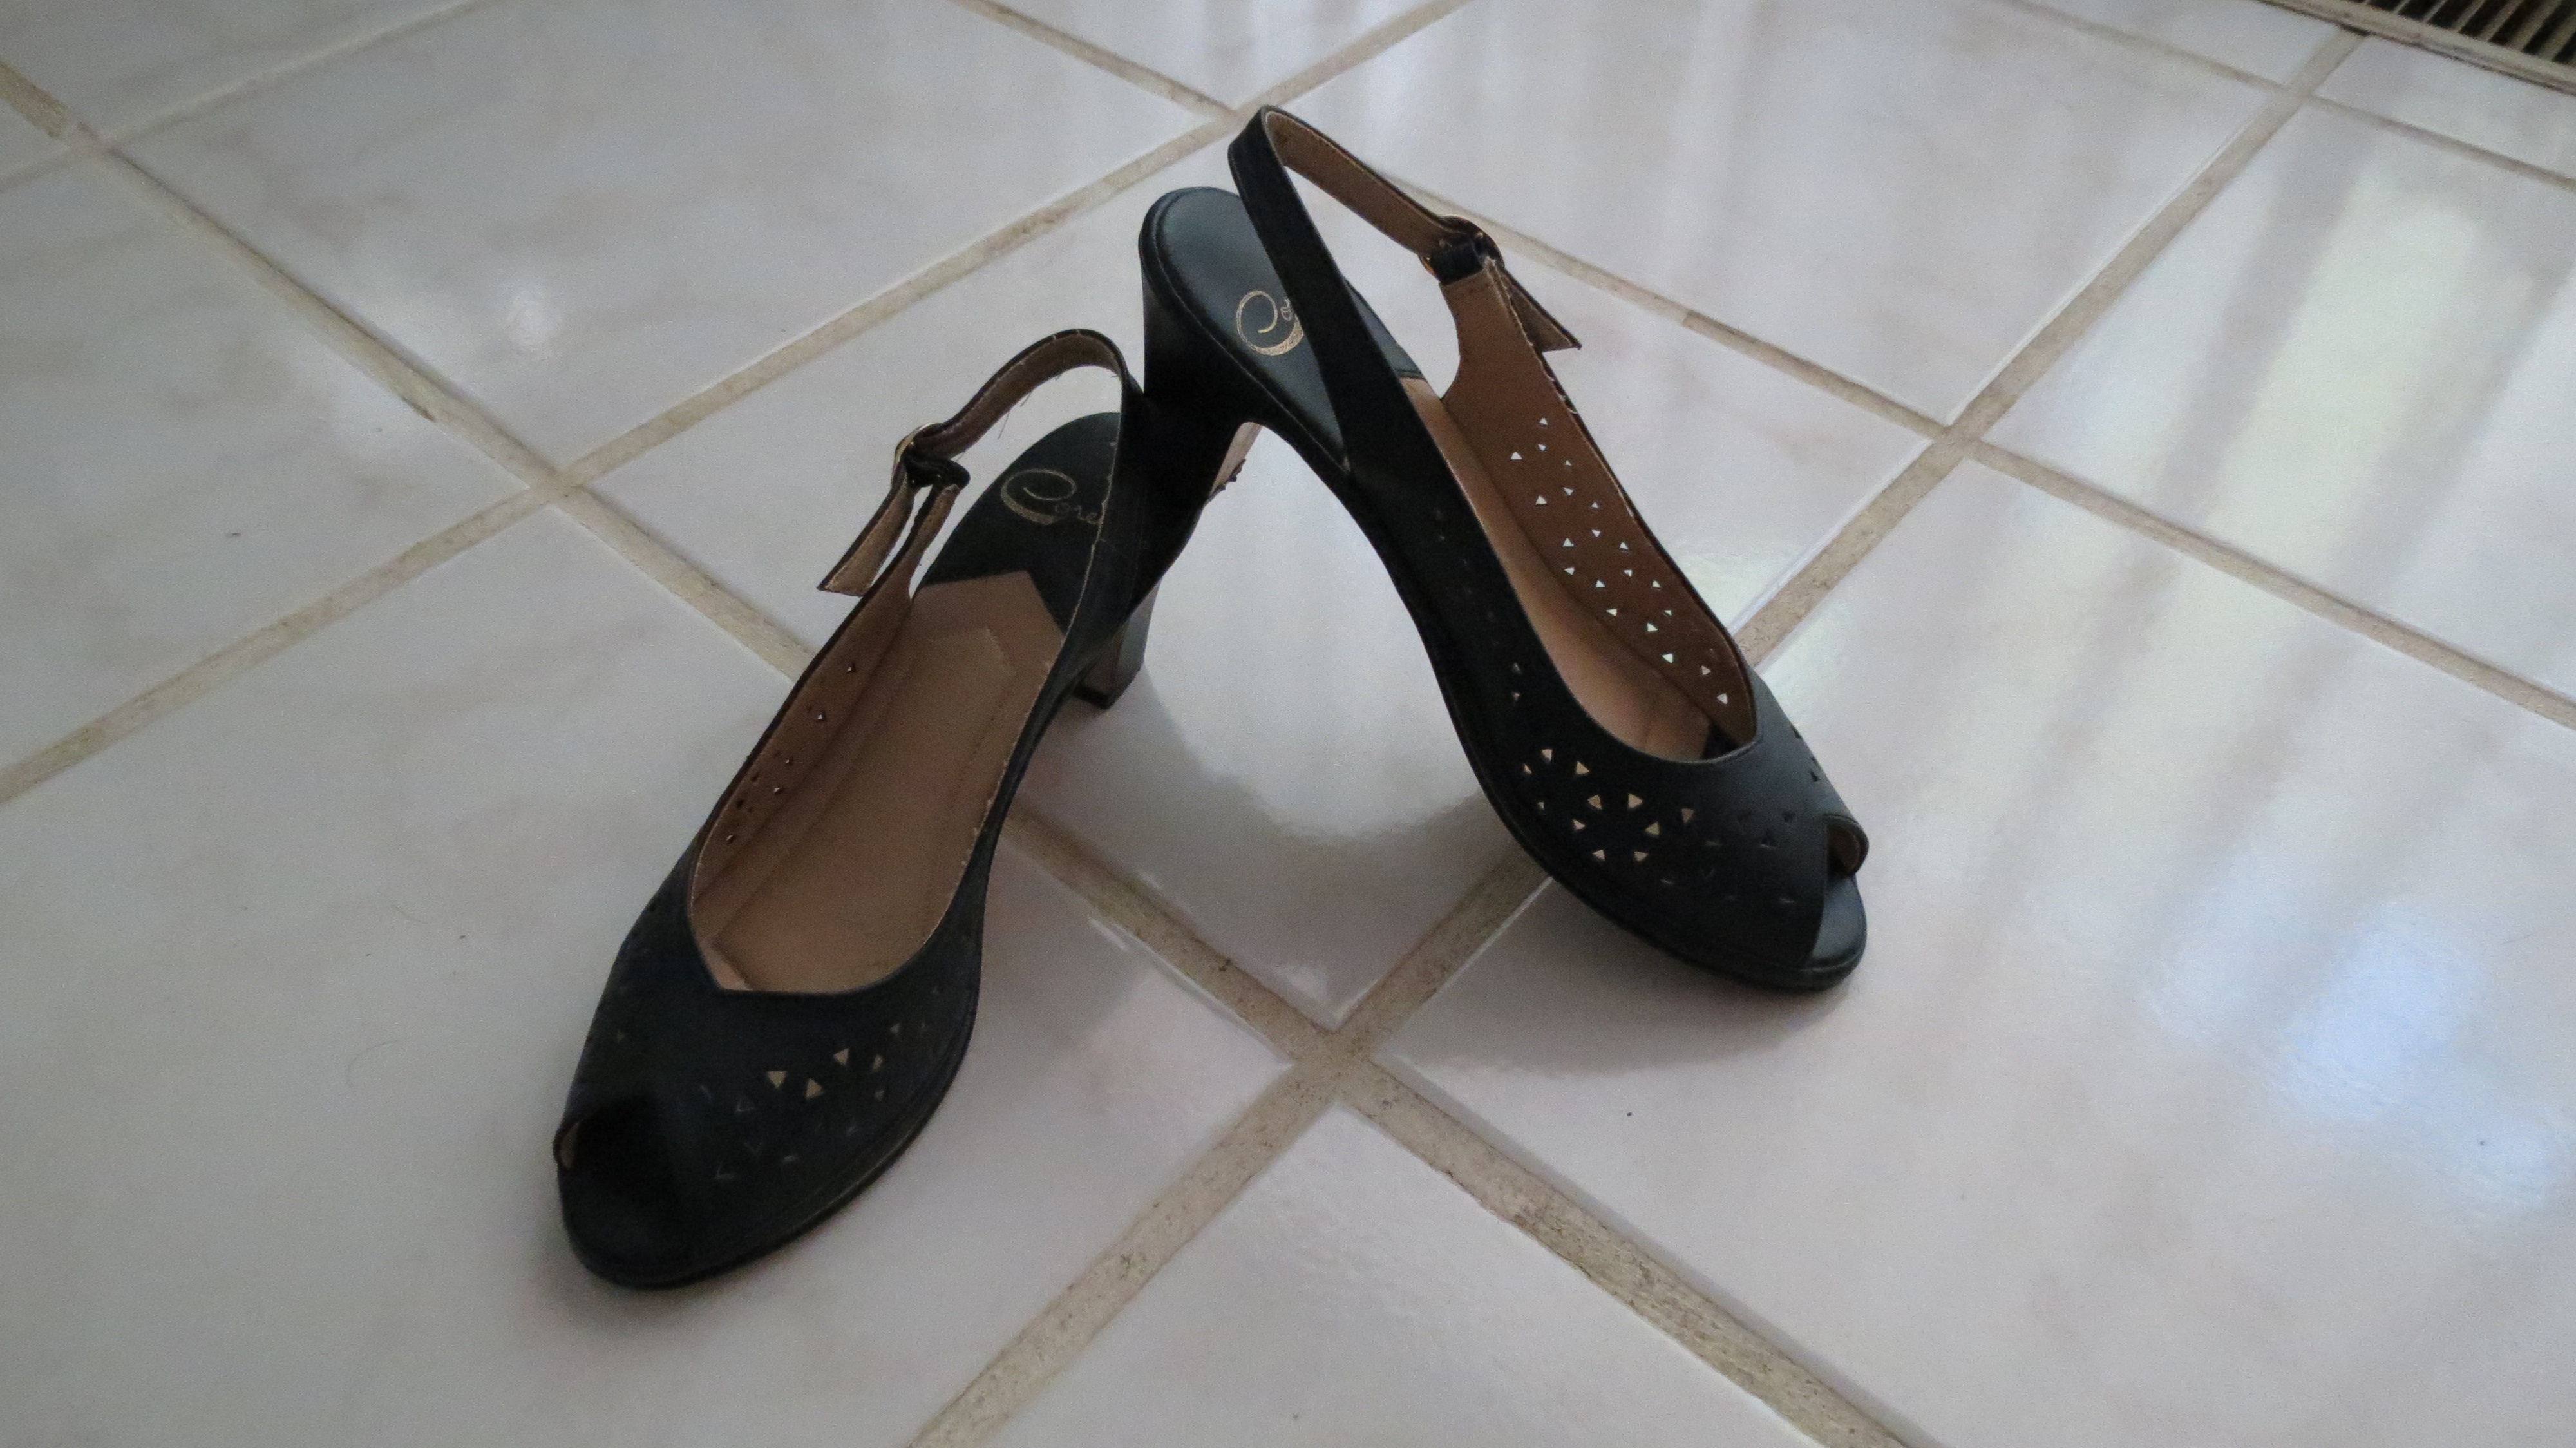 RECENT FIND!  SLING-BACK PEEP-TOE PUMPS MADE BY AN ITALIAN COMPANY - VINTAGE 1950'S